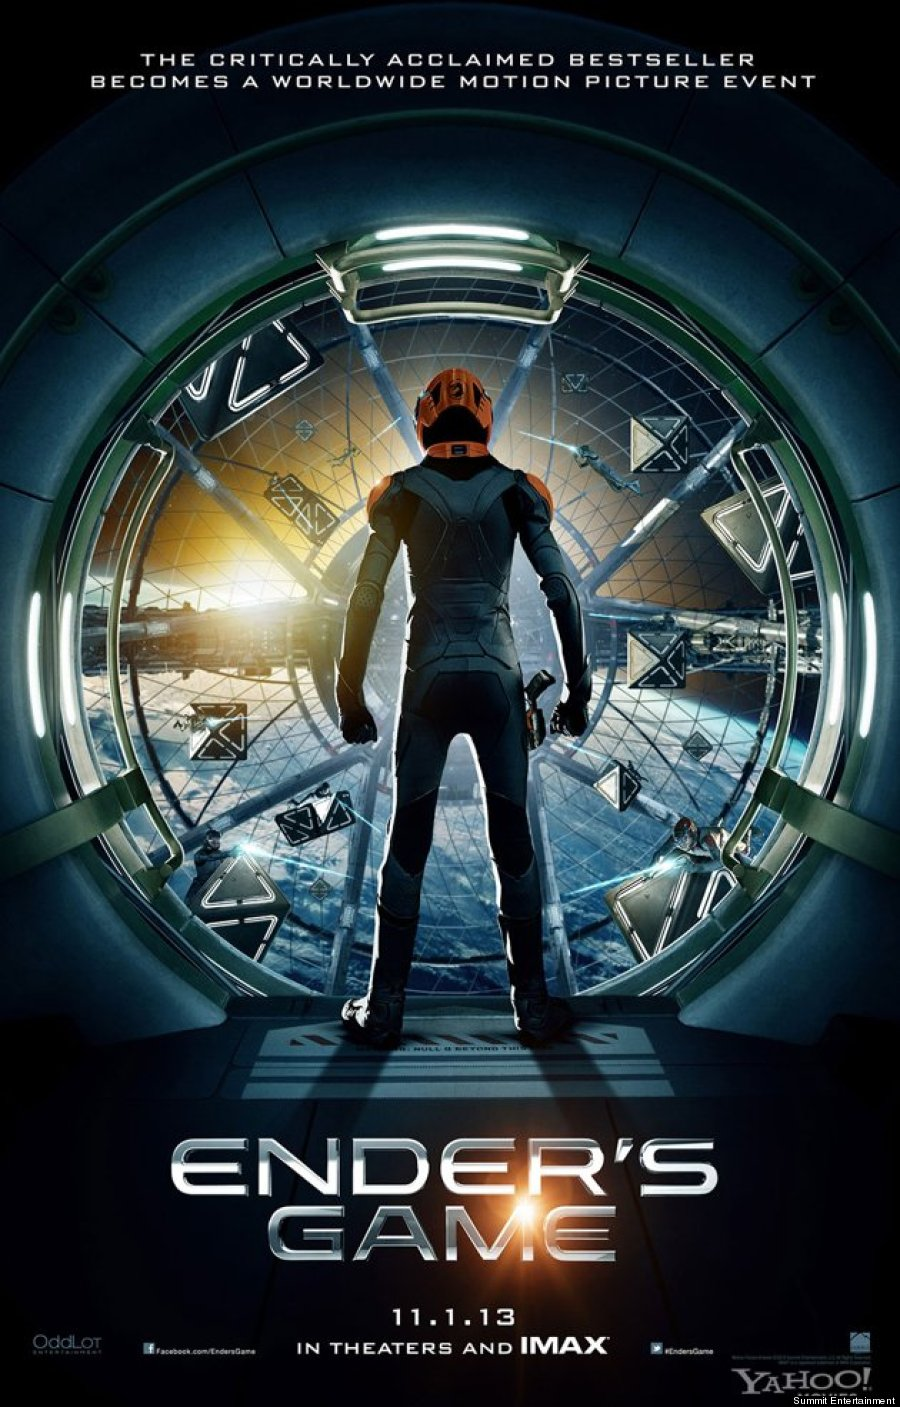 Ender's Game Movie Poster Featuring Harrison Ford and Abigail Breslin